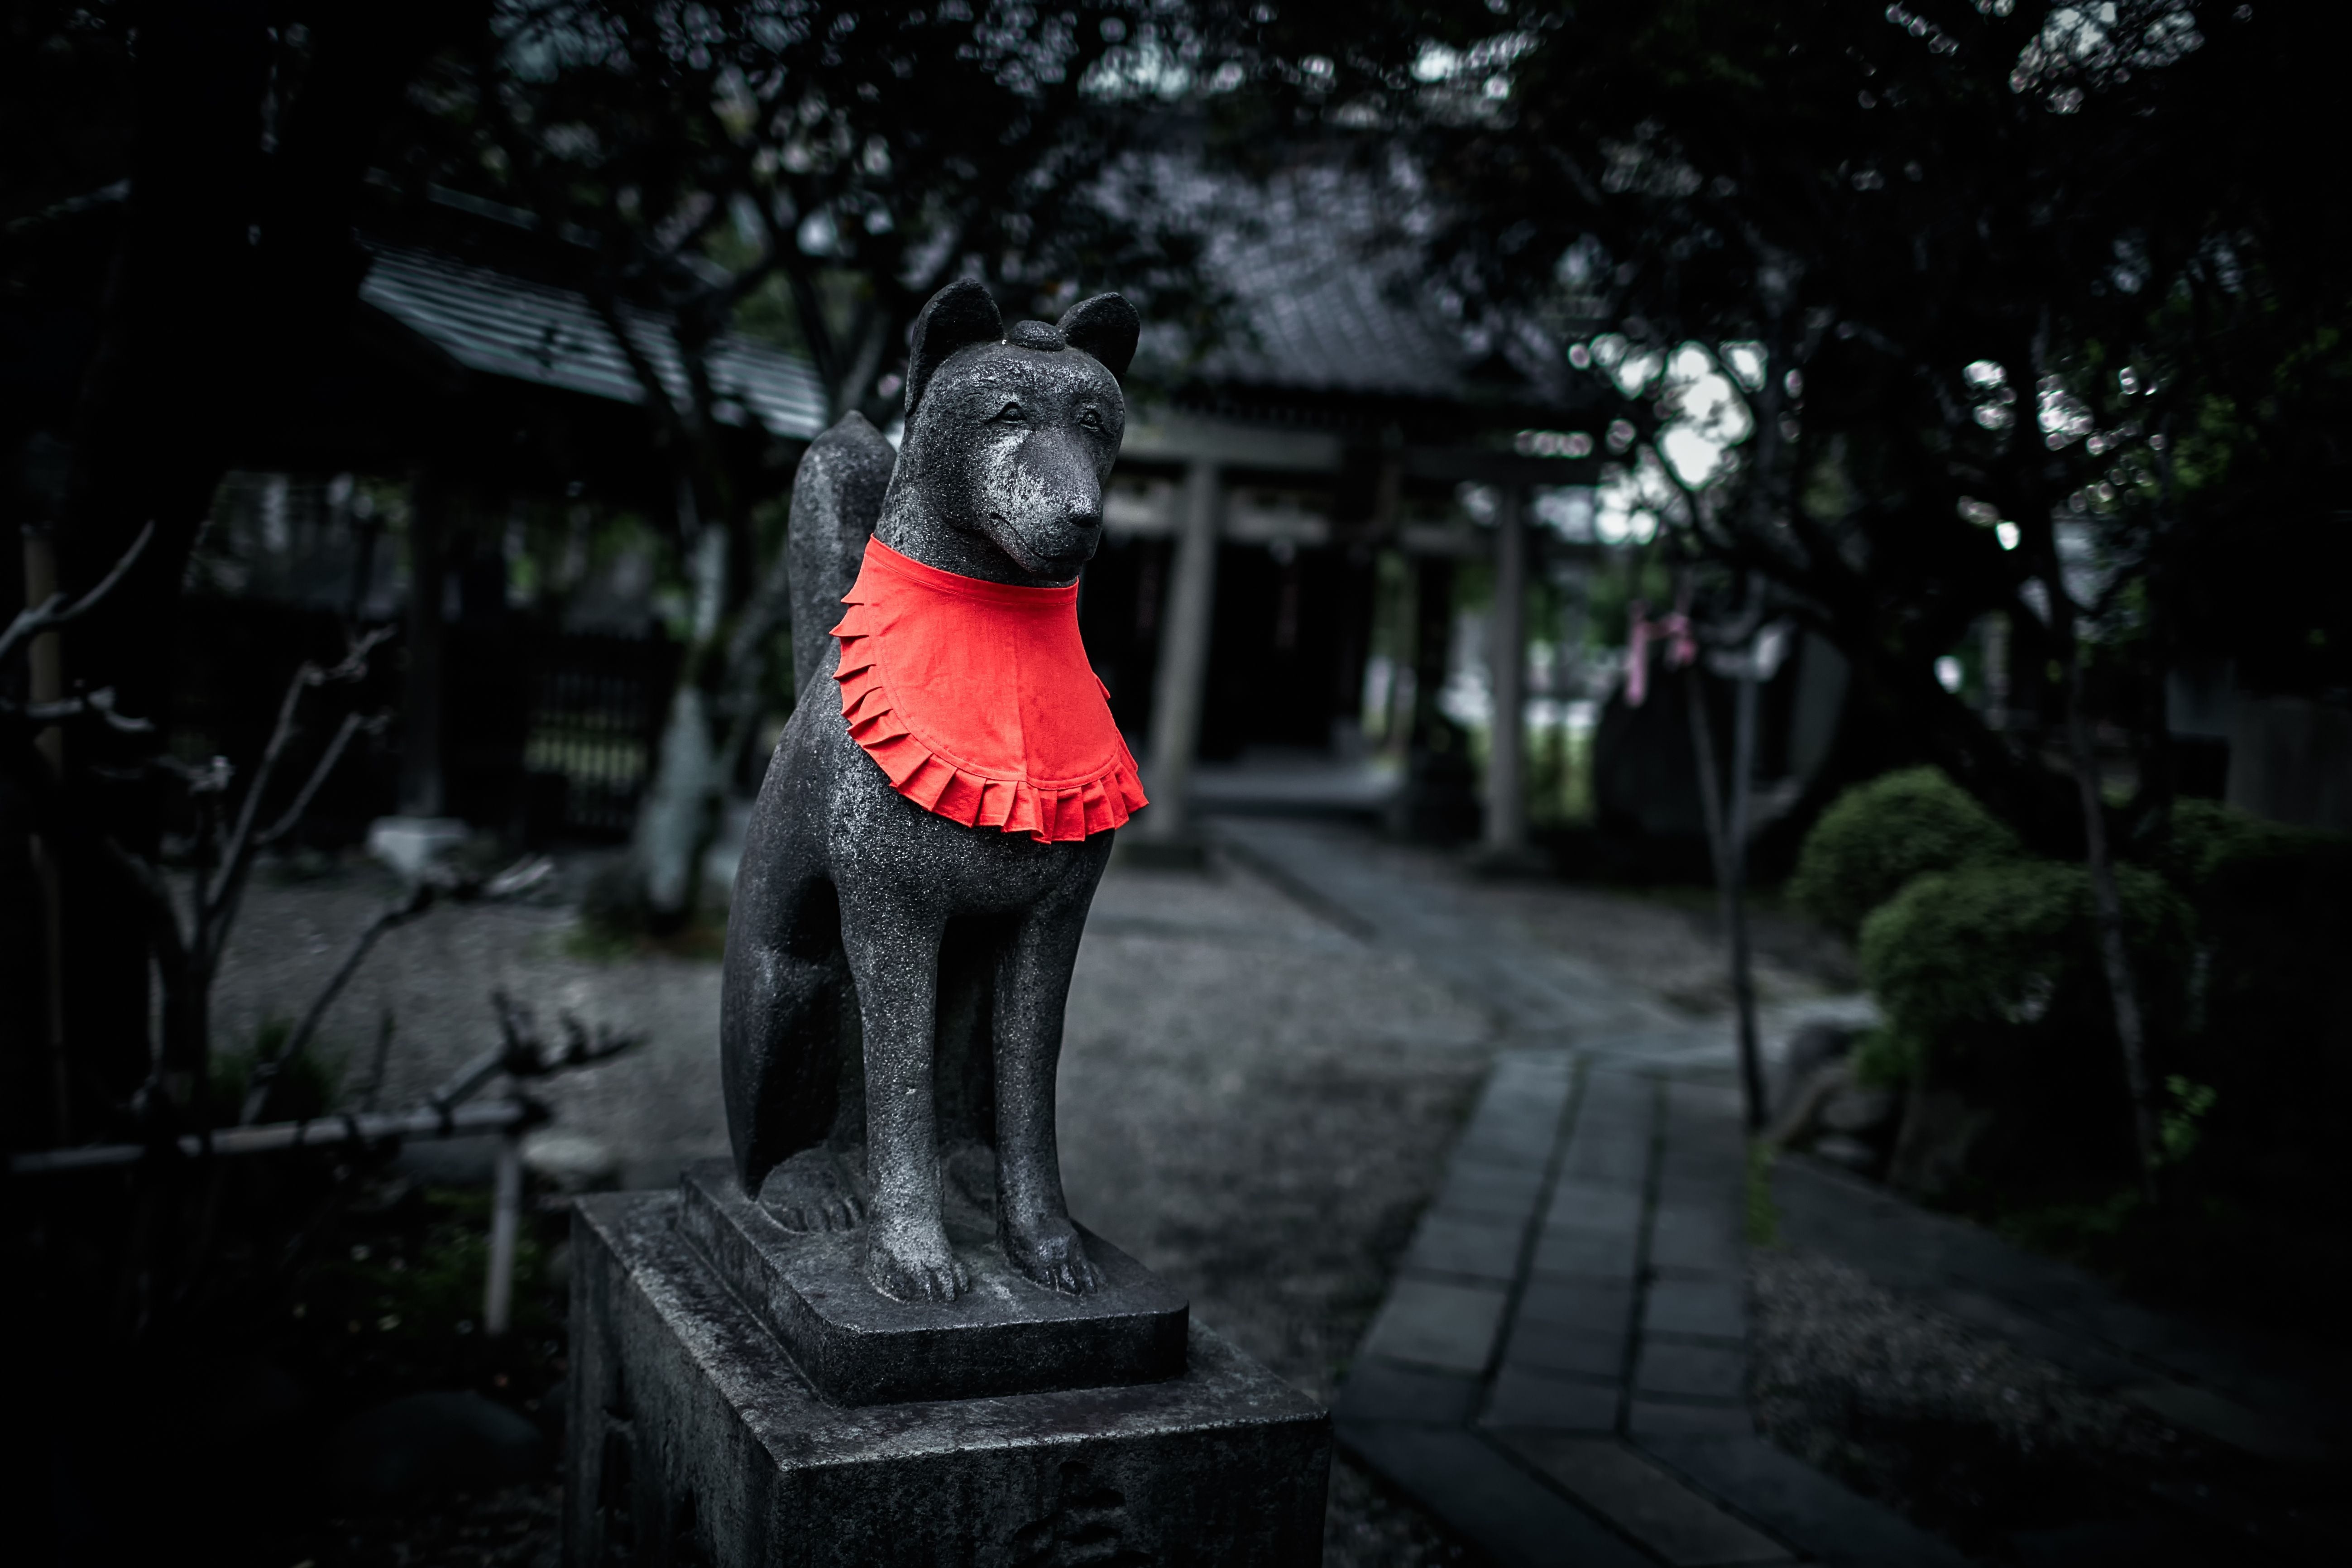 In Japanese shrines, fox statues may be adorned with red bibs as a sign of devotion and connection to the Kitsune.